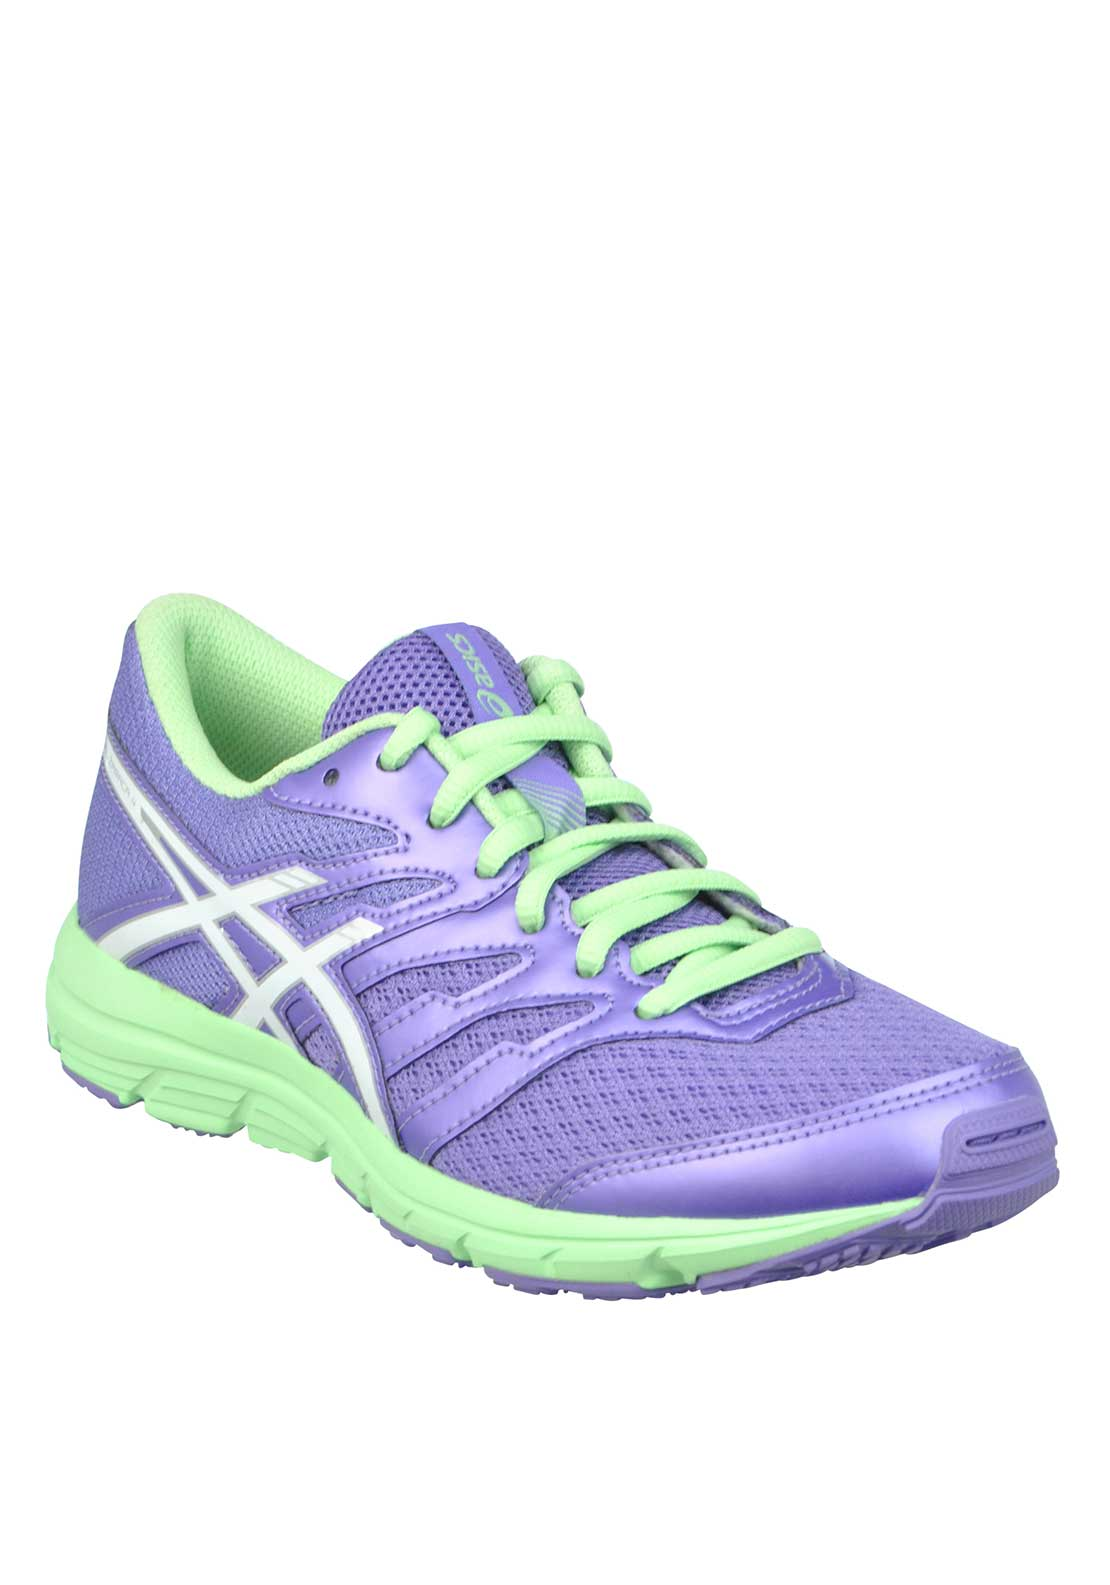 Asics Girls Gel Zaraca 4 Runners, Lilac and Mint